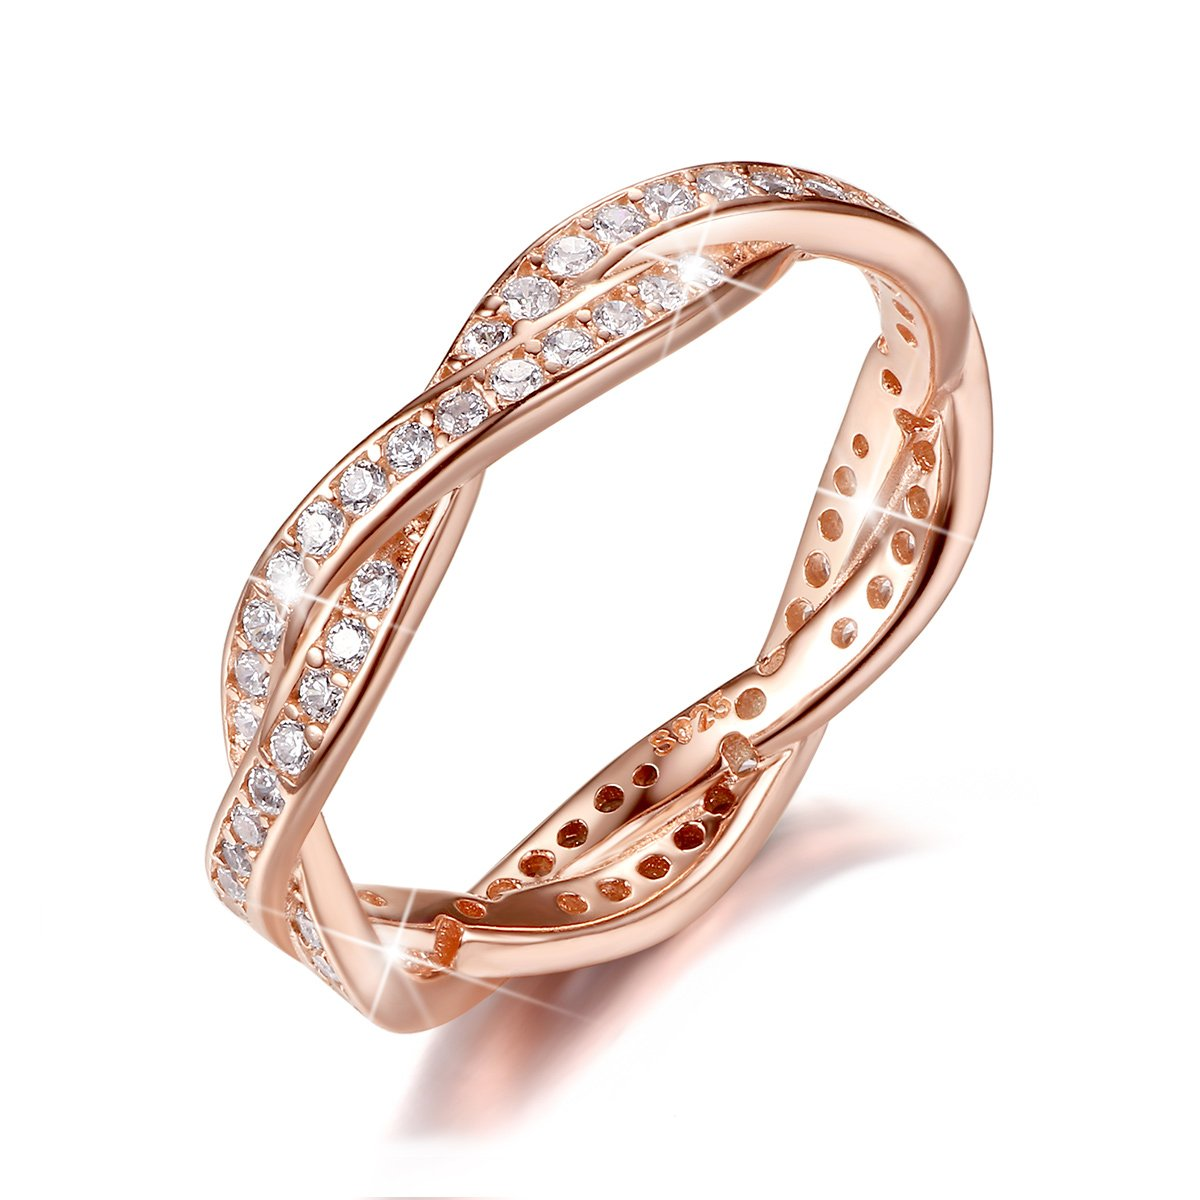 BAMOER Rose Gold Plated Eternity Promise Rings Wedding Jewelry 925 Sterling Silver with CZ,Size 10